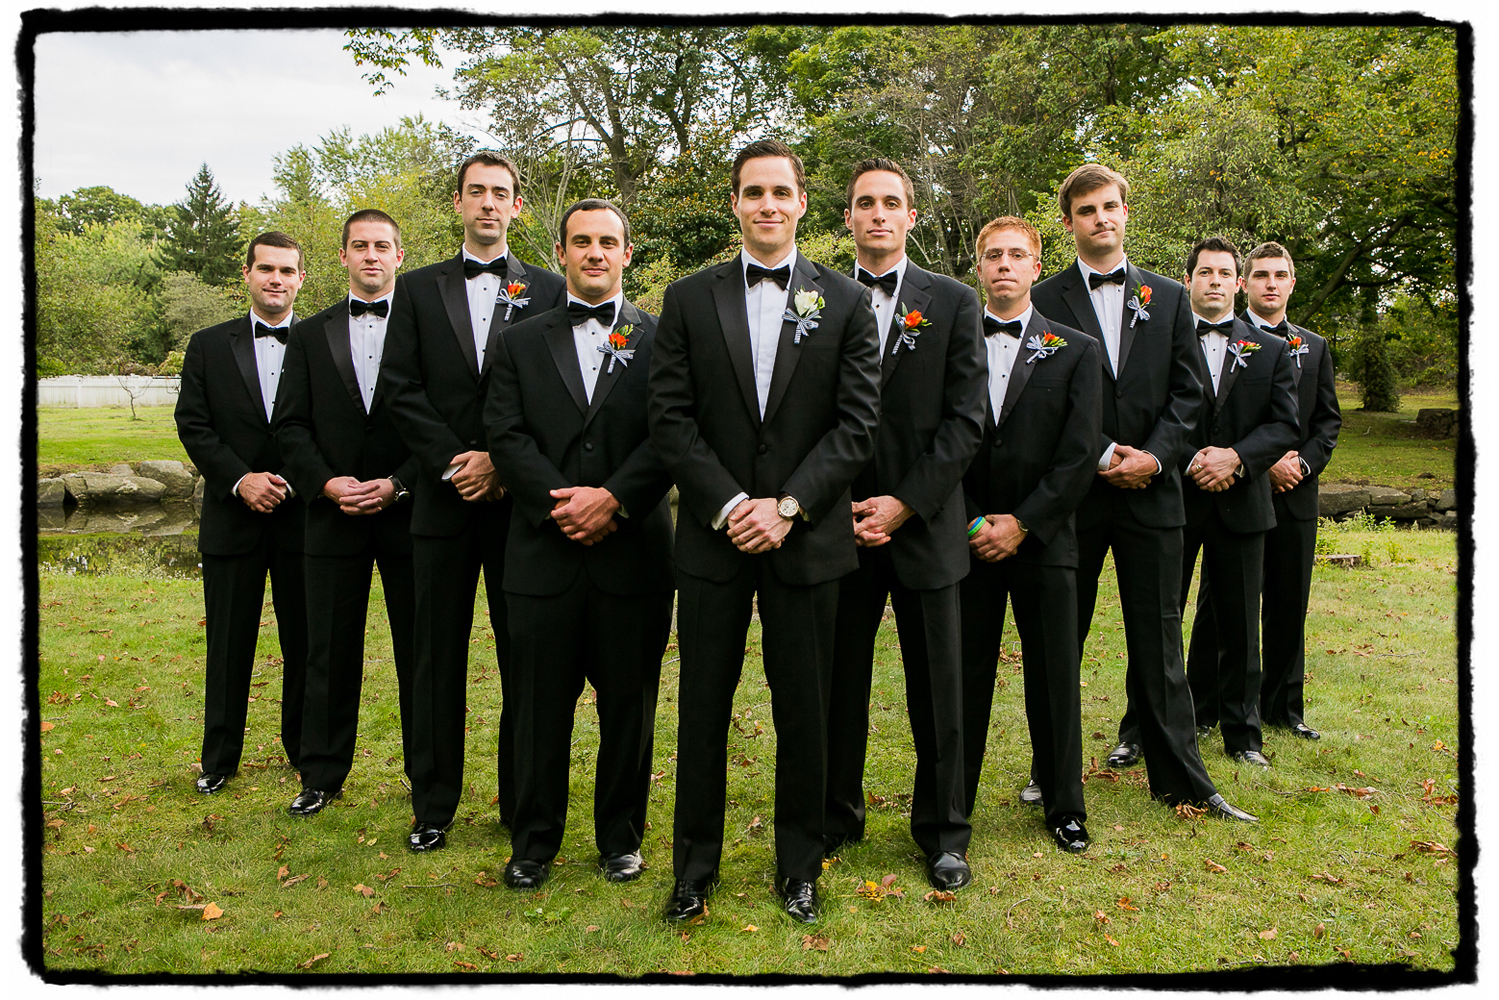 Mike and his groomsmen in black tie at the park in Greenwich, CT.